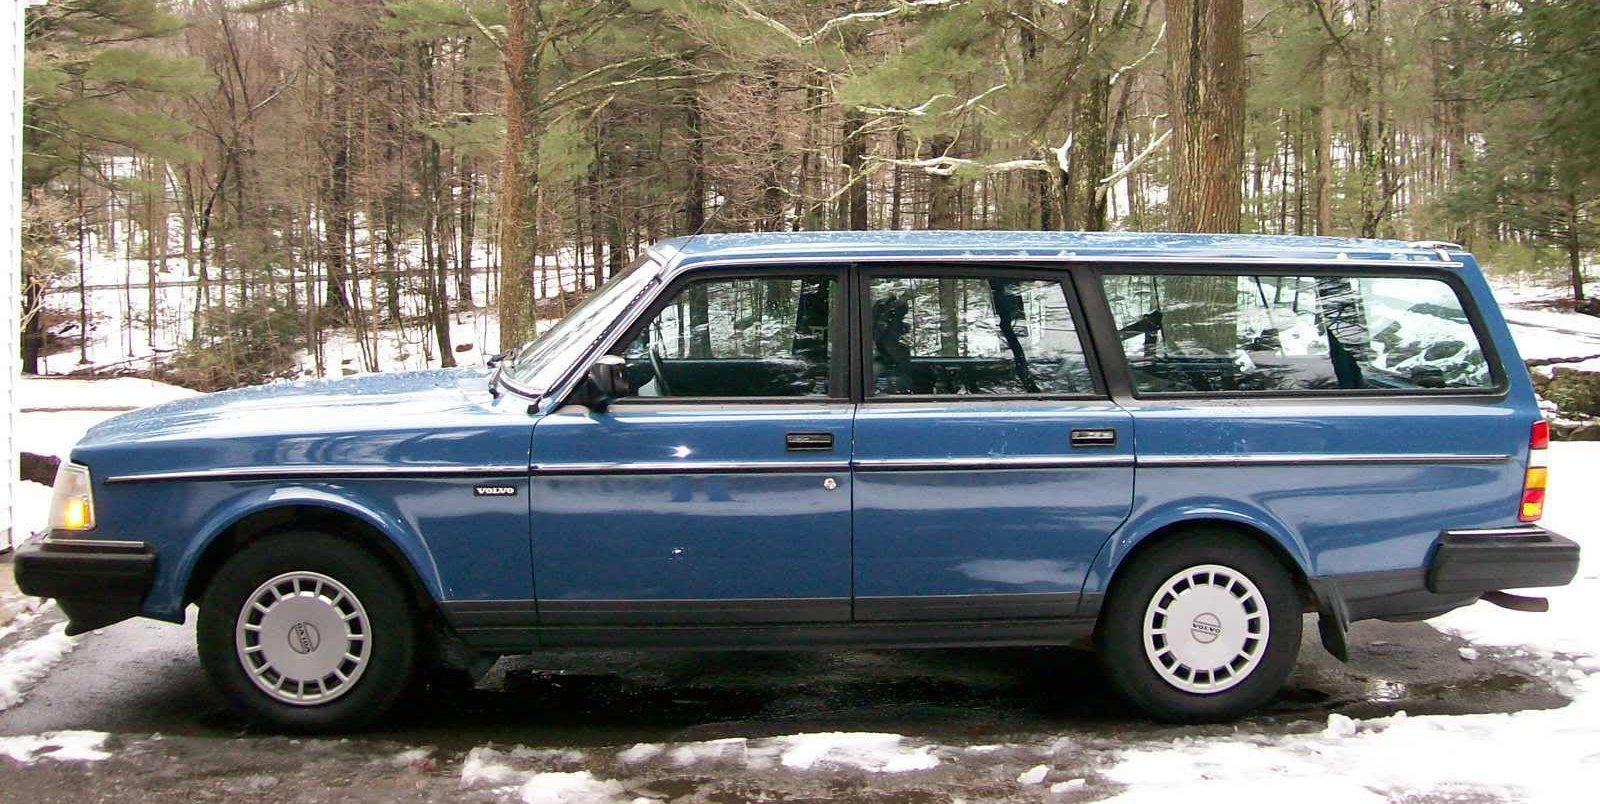 1986 240 Volvo Wagon Ours Was Yellow This Car Was Solid Not The